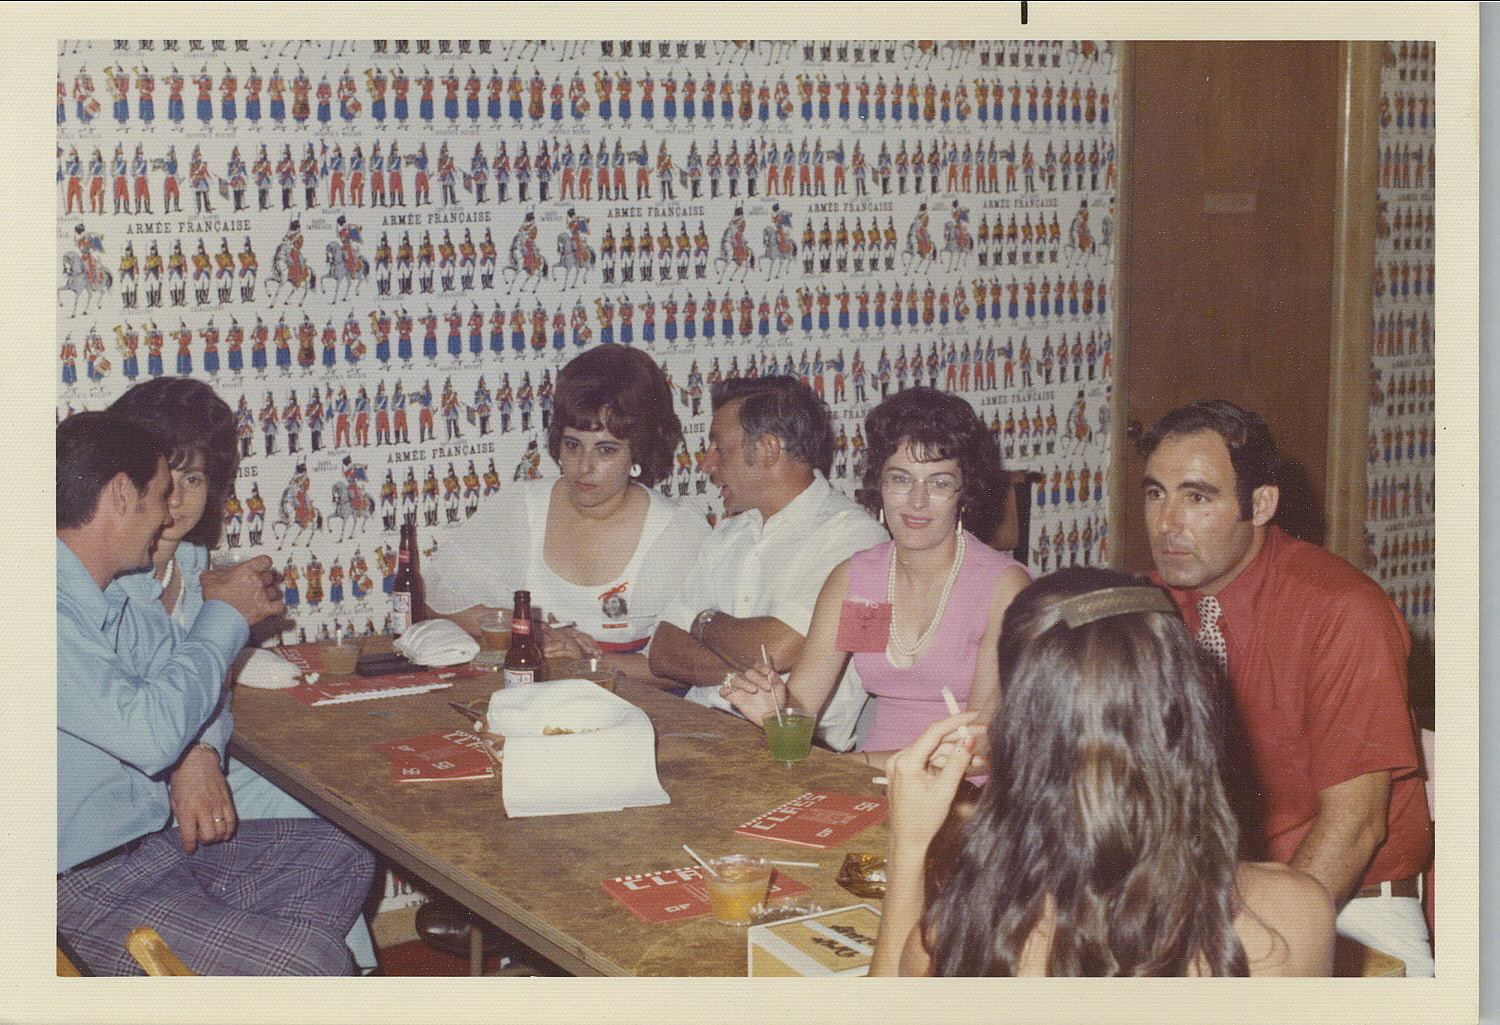 Slightly Faded Old Reunion Pictures found in DY_s cellar.-101_18